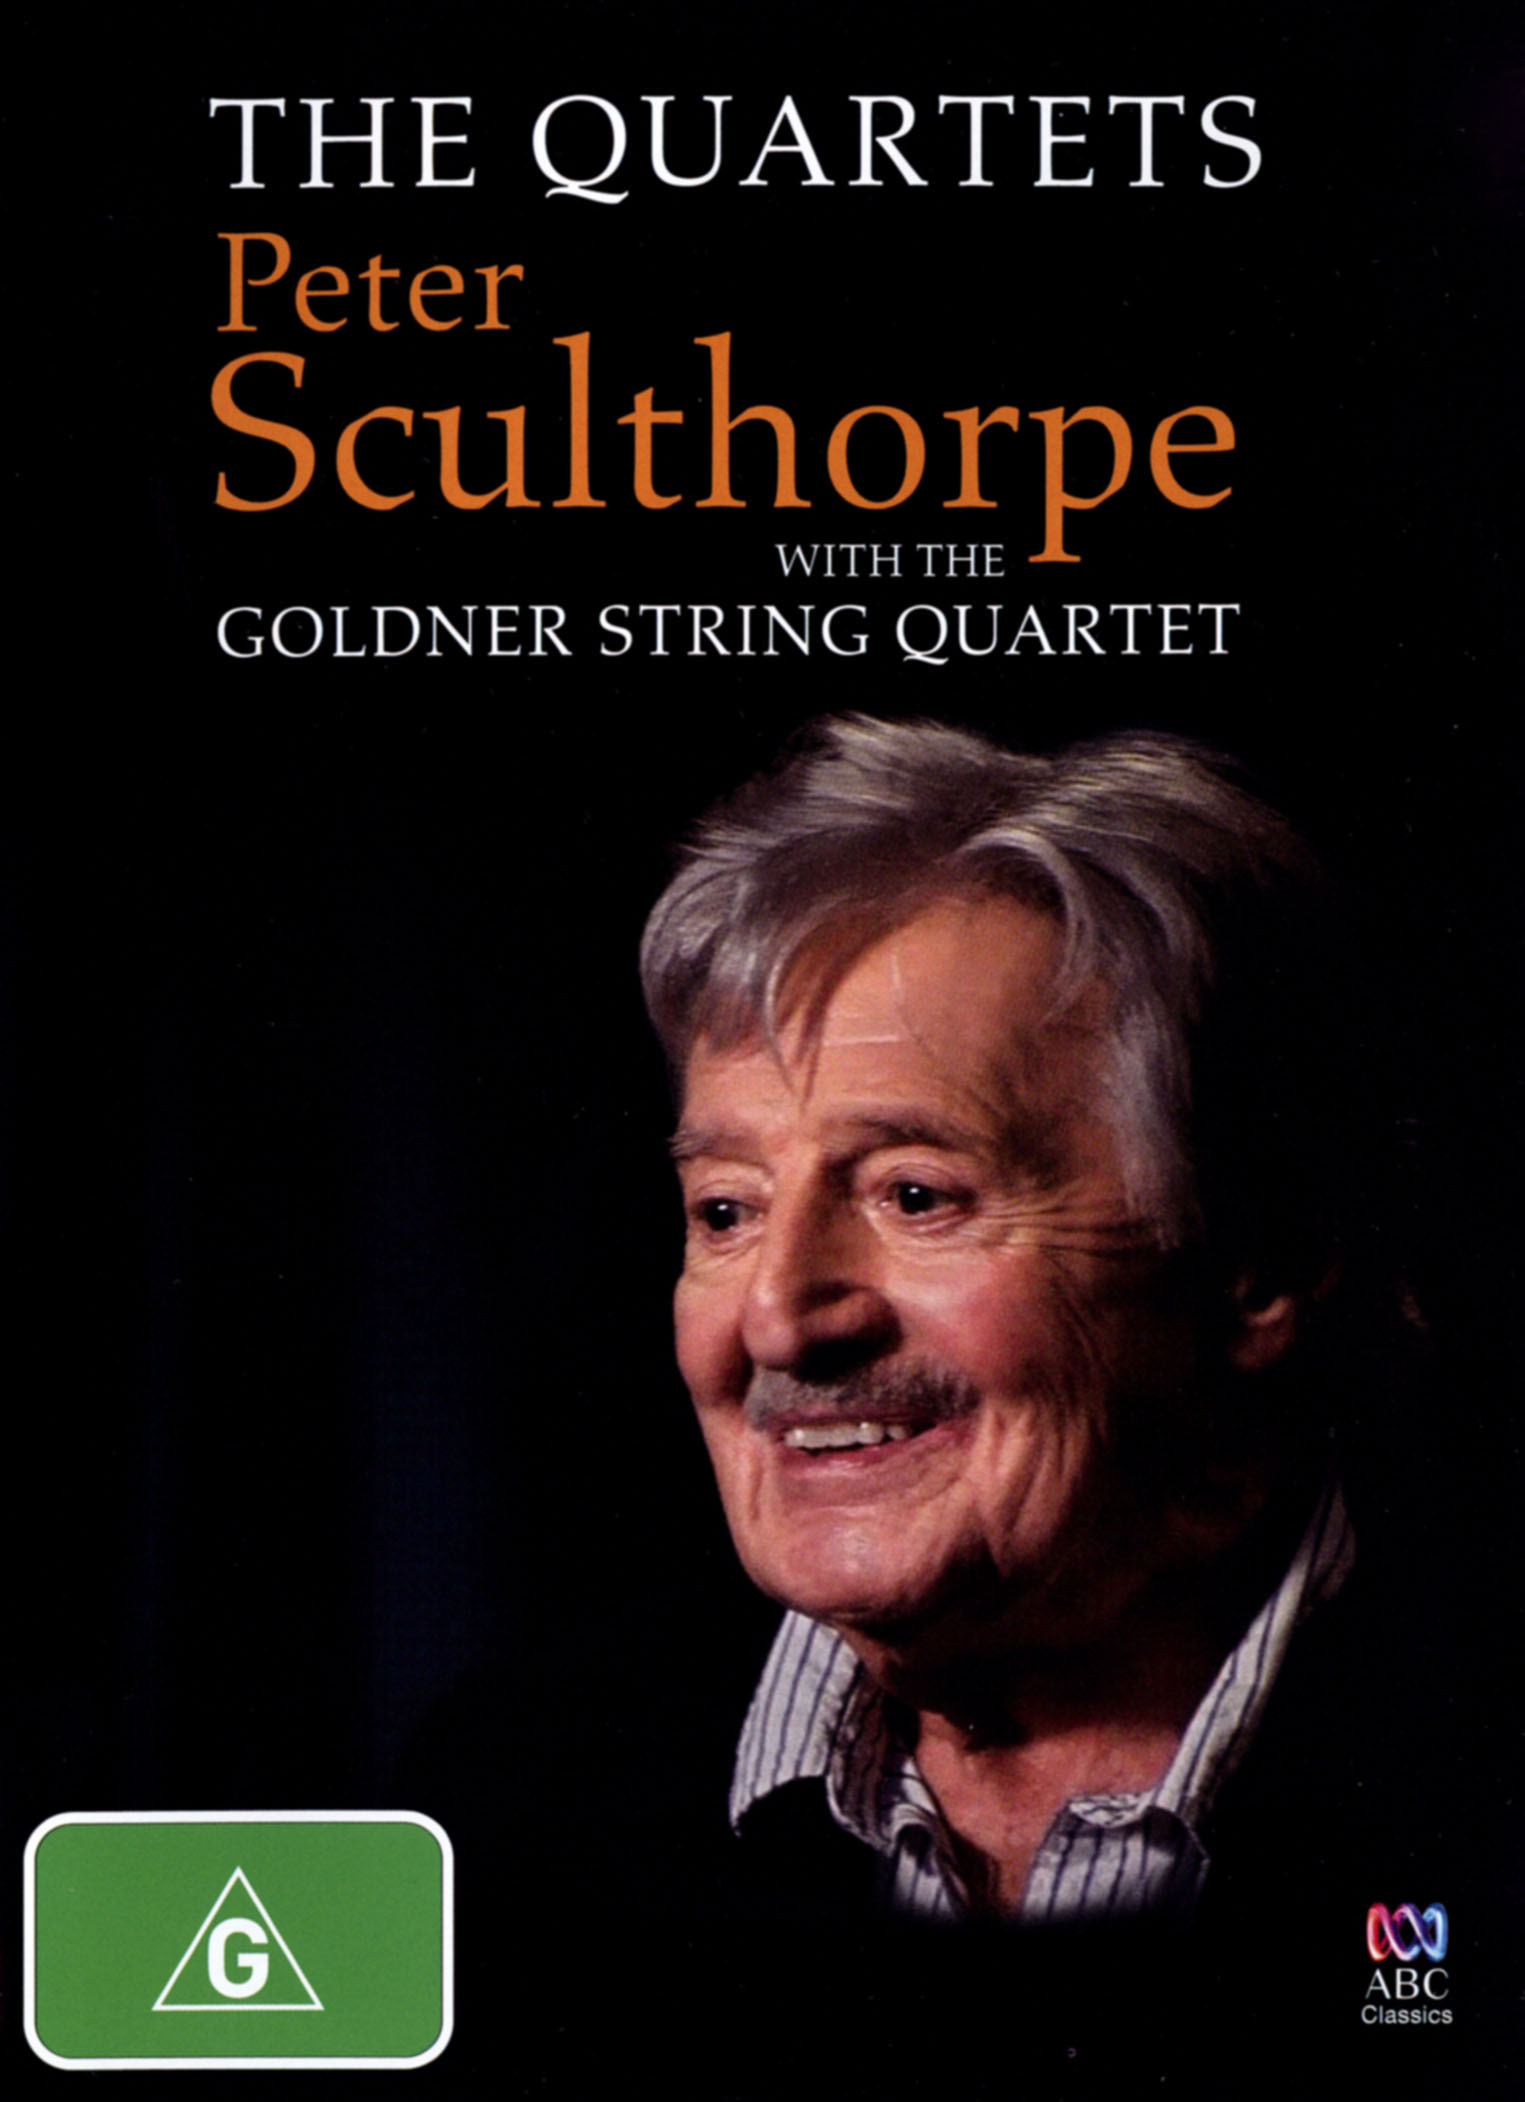 Peter Sculthorpe: The Quartets